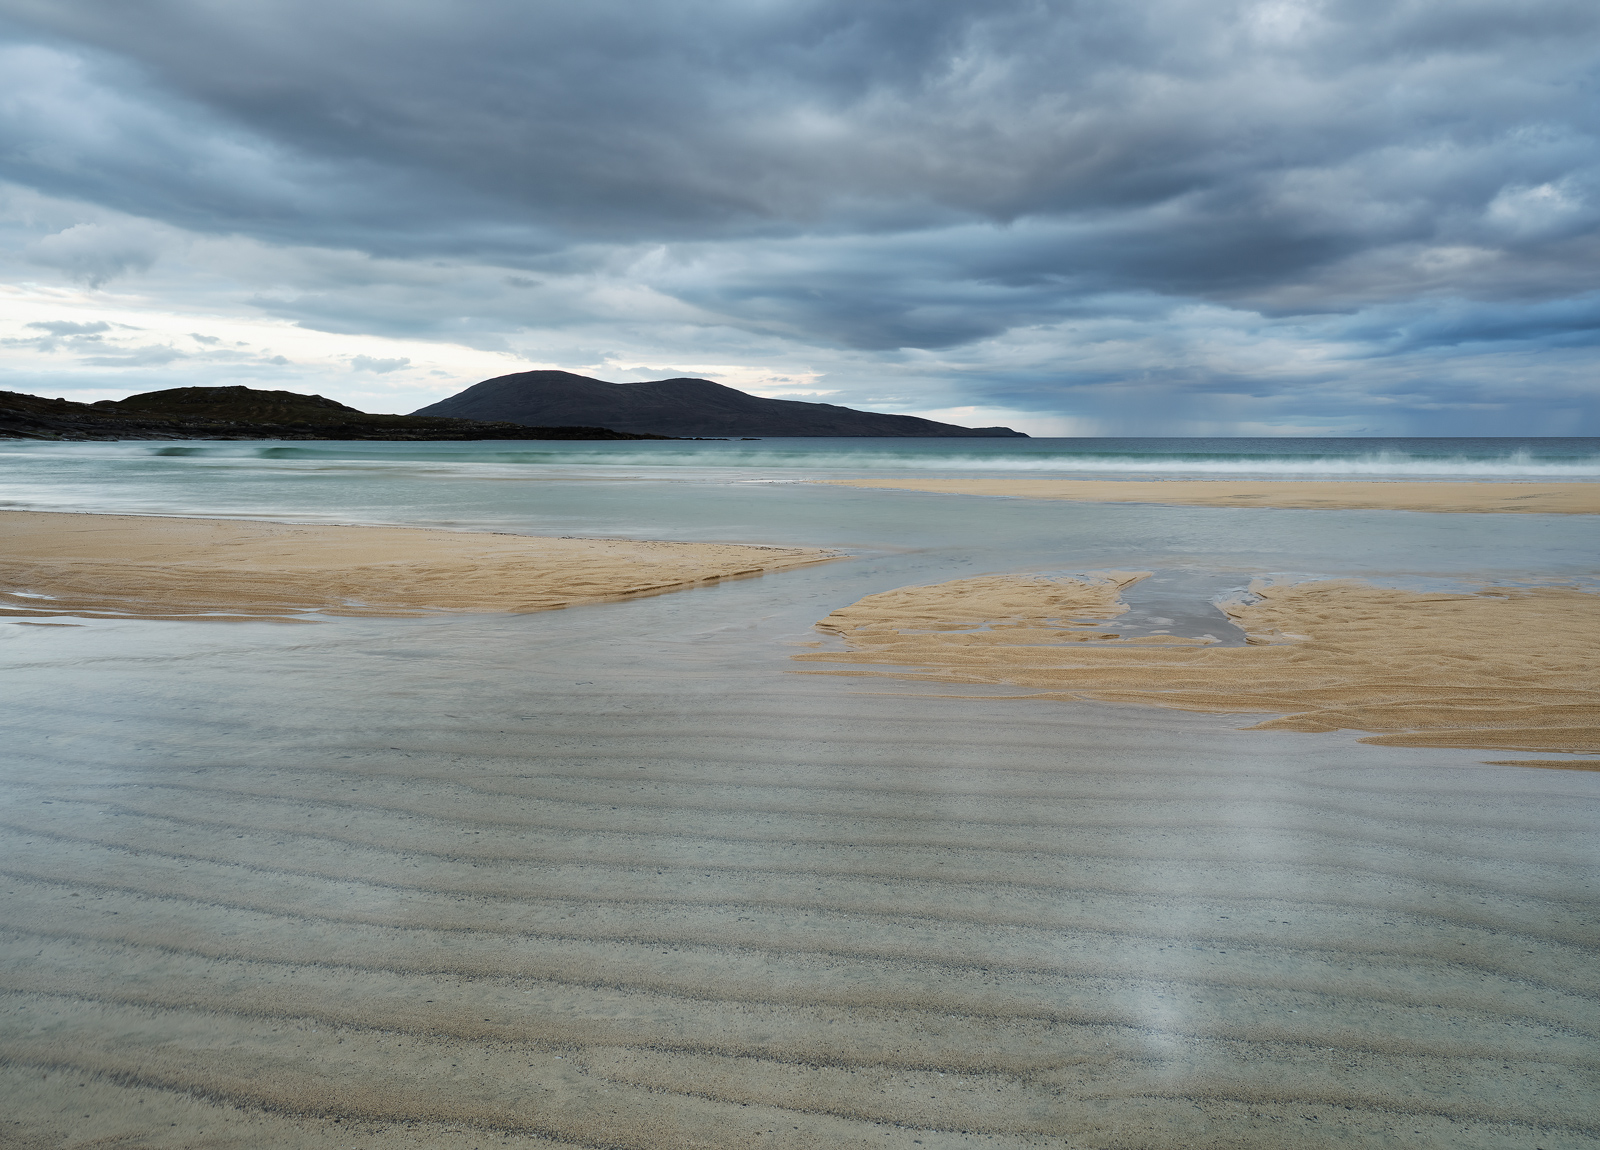 Parallel tram lines form on Traigh Lar beach at low tide and traverse the entire beach creating strong patterns in the sand against a steely grey sky.